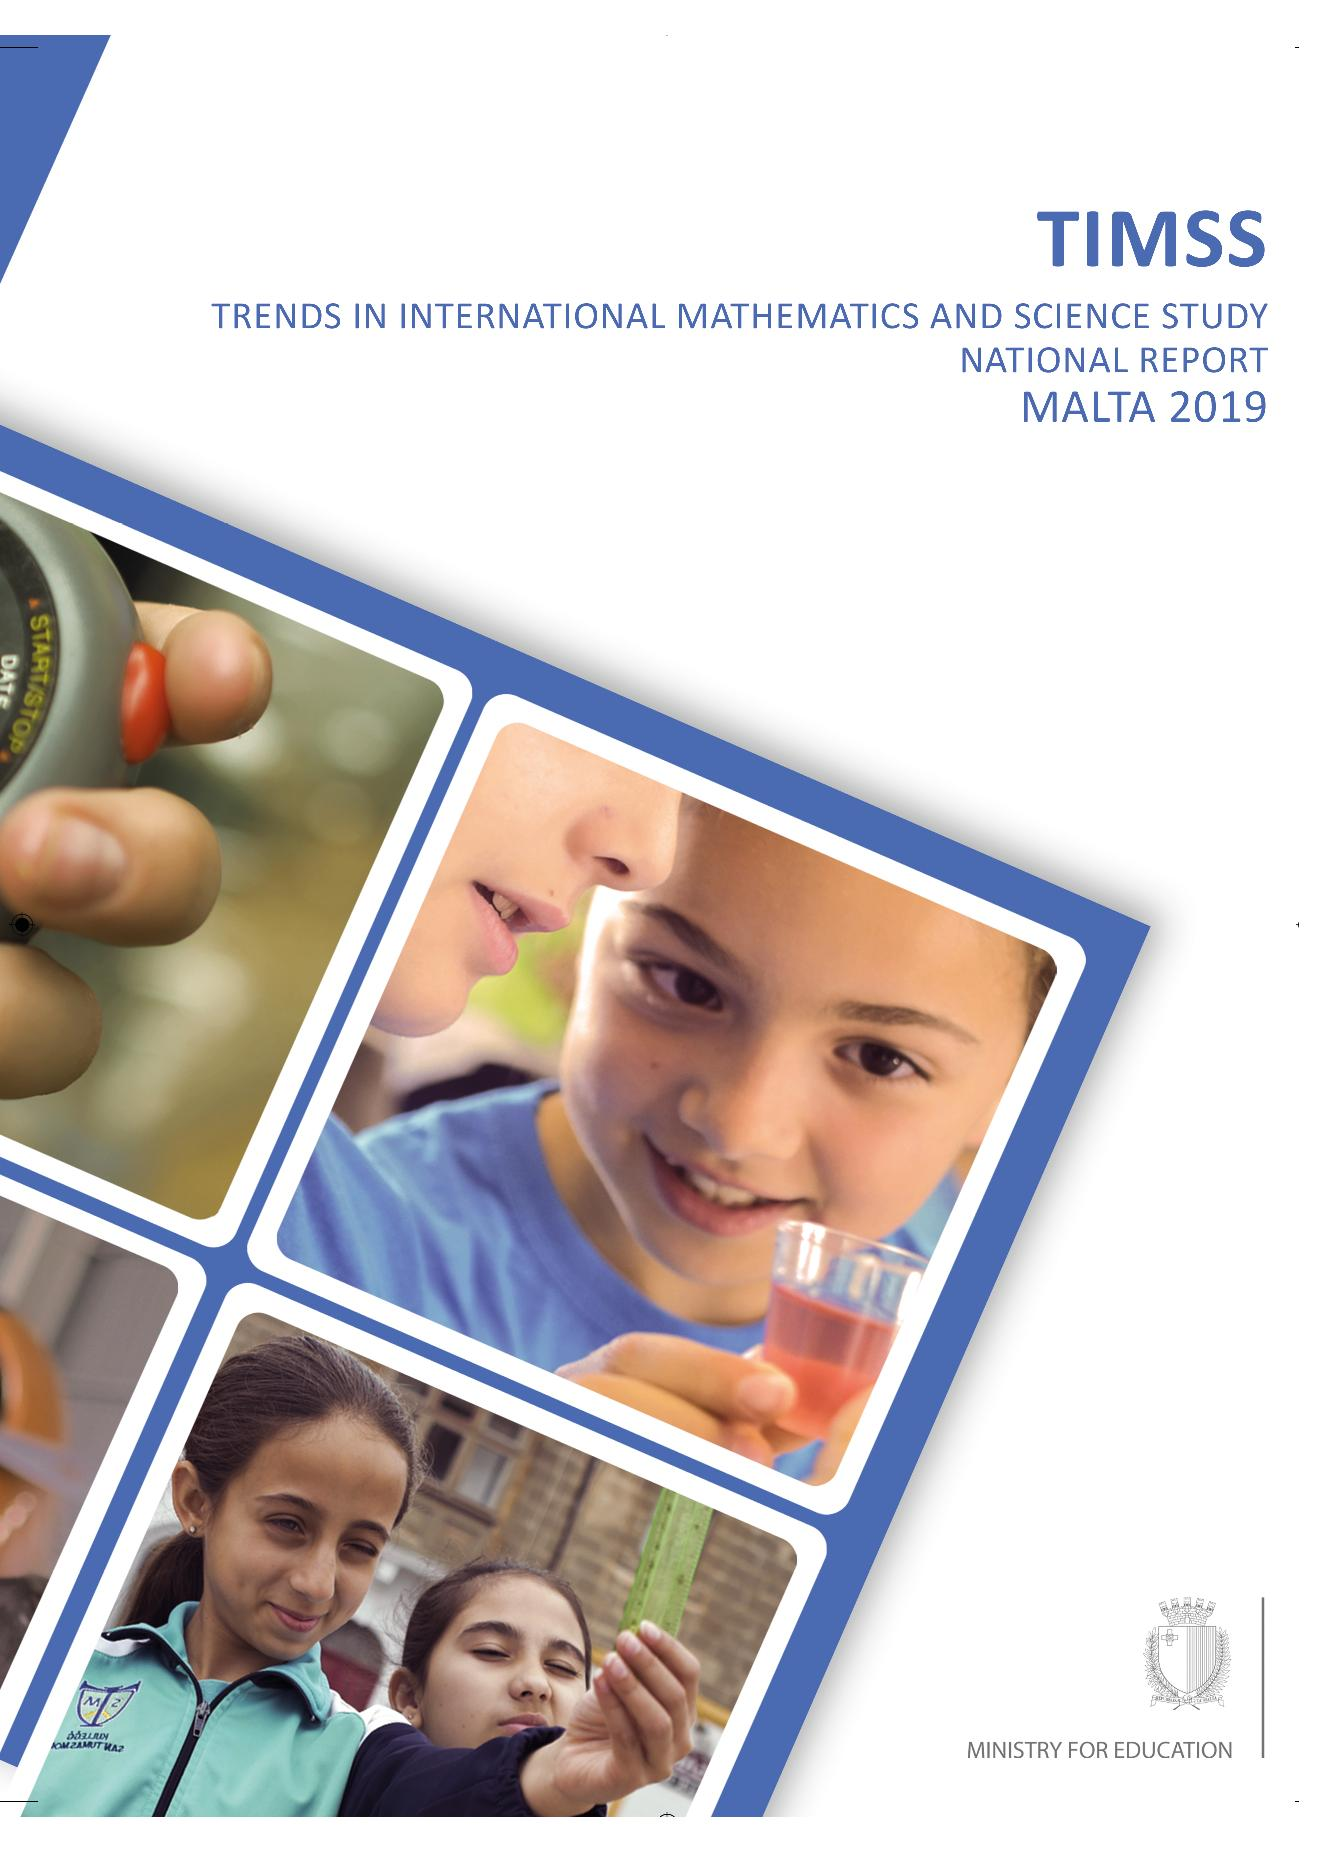 TIMSS Report 2019 Cover photo.jpg